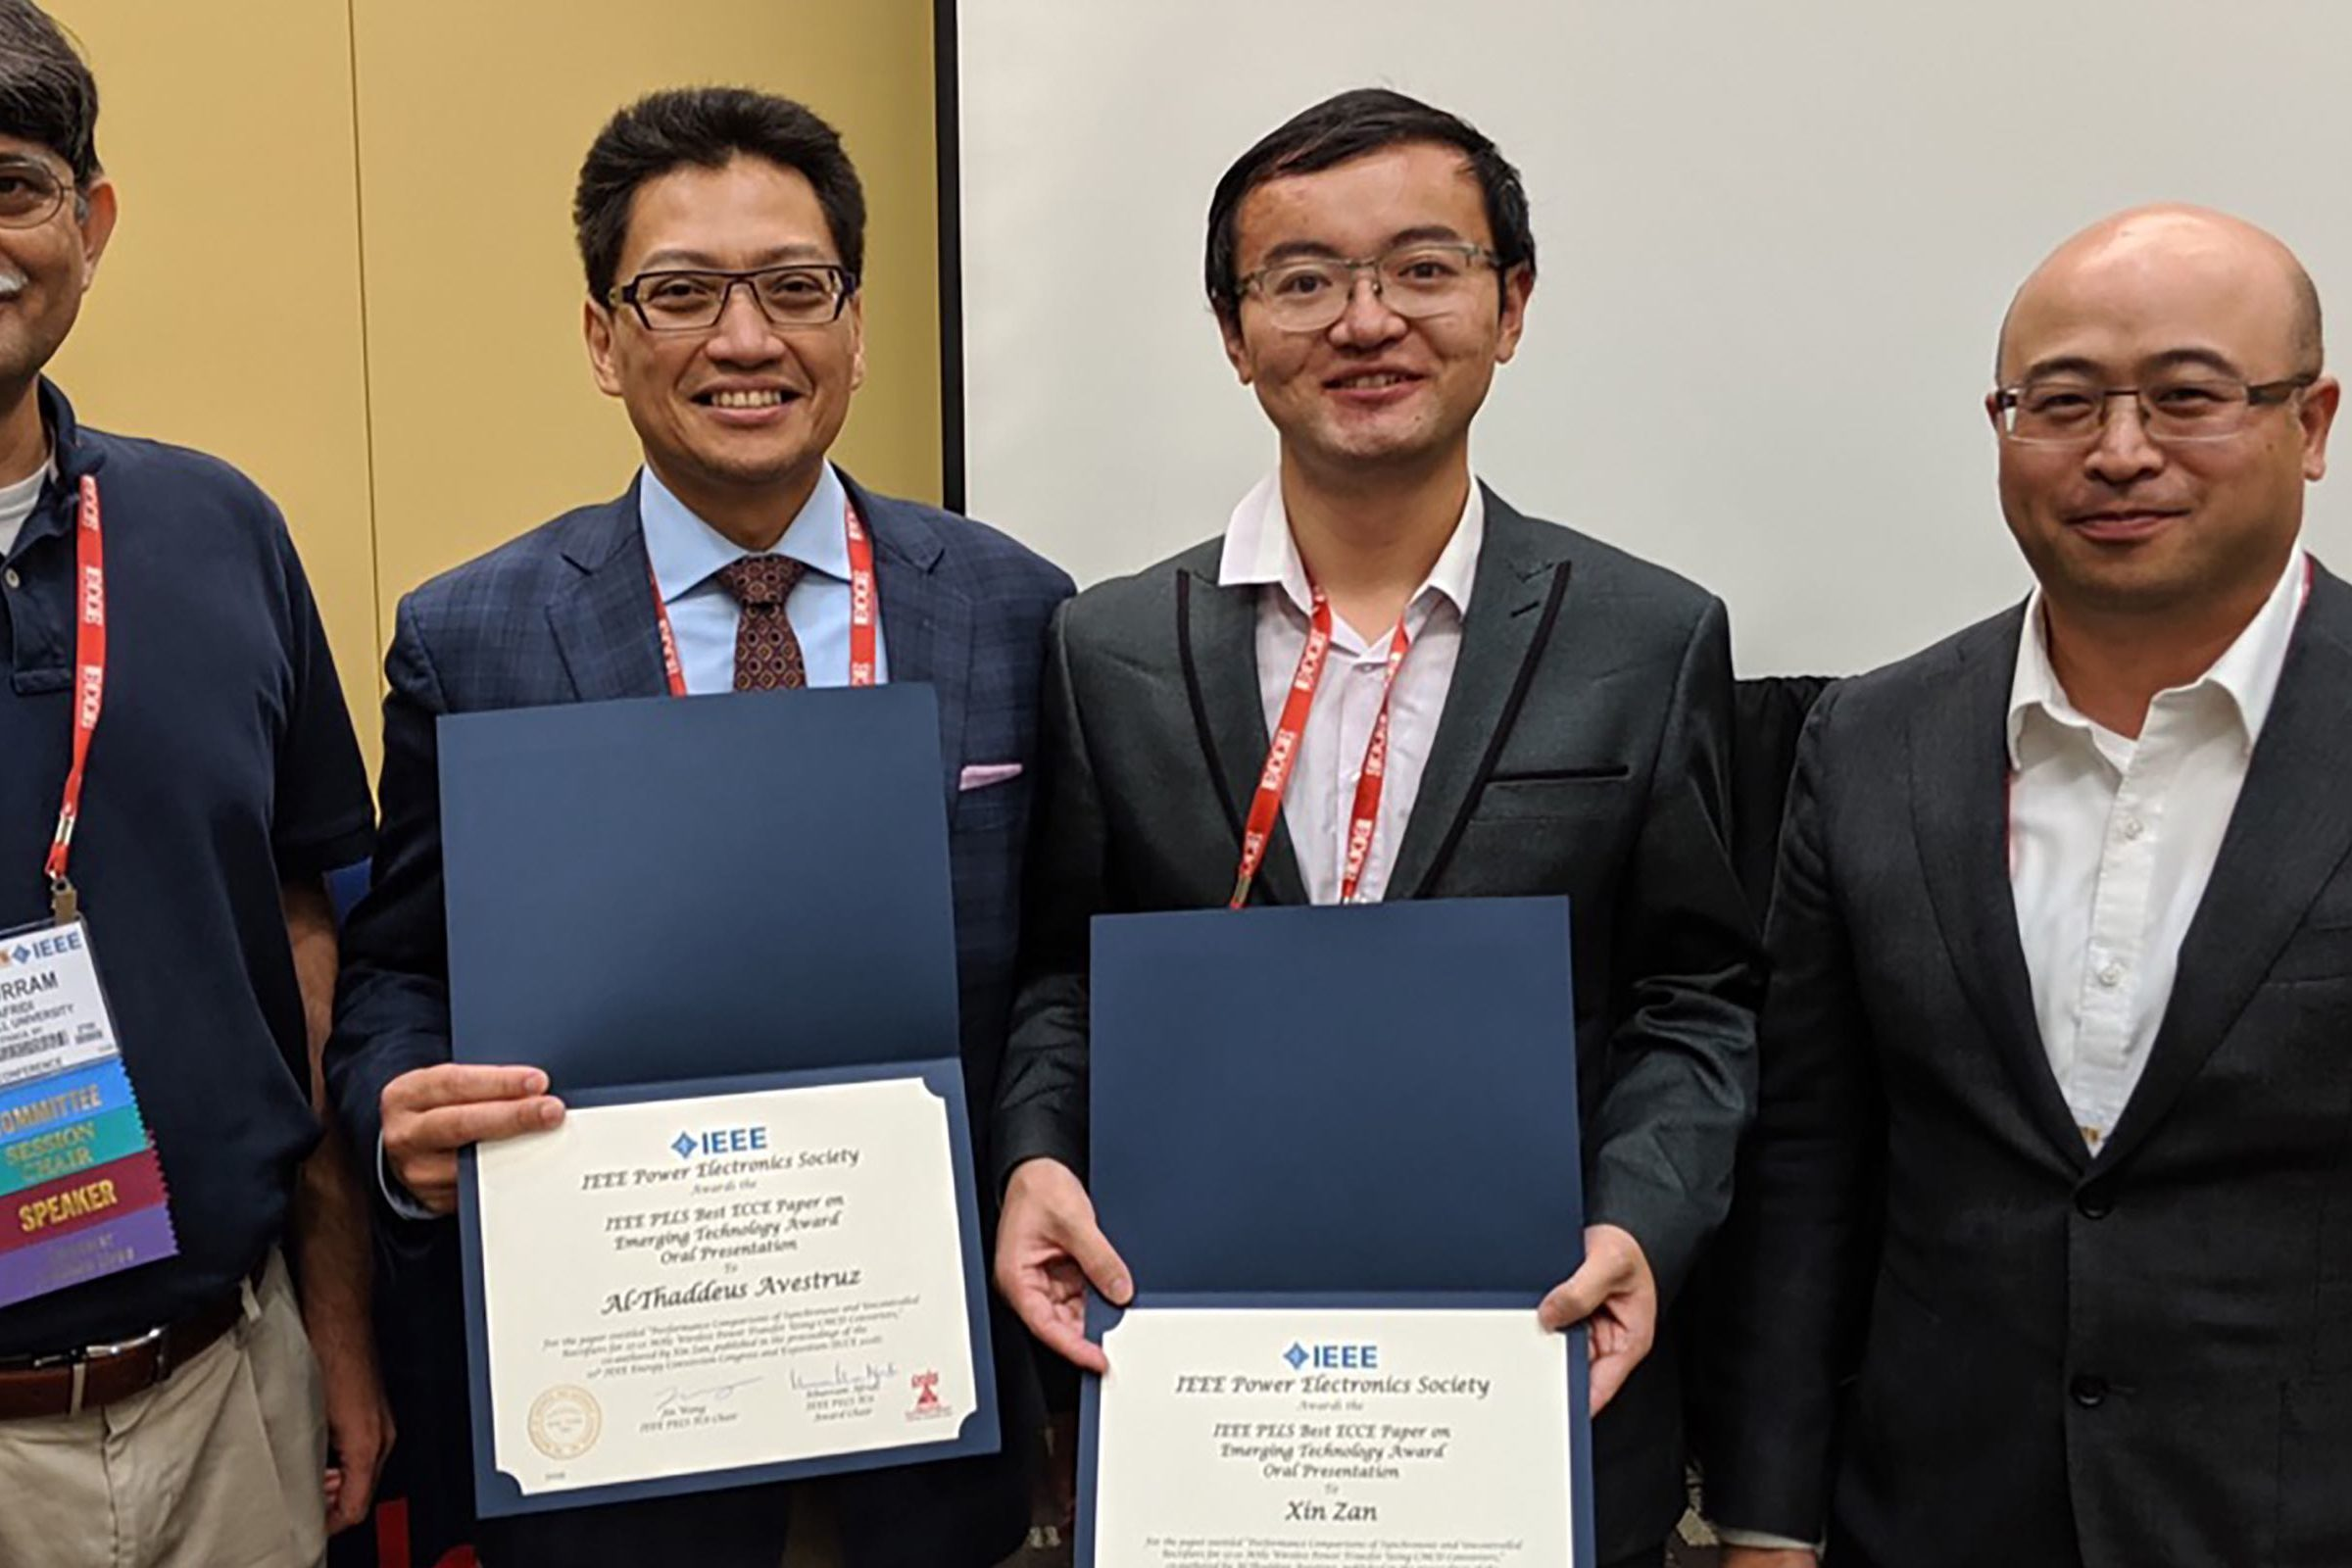 Best paper award for optimizing wireless power transfer